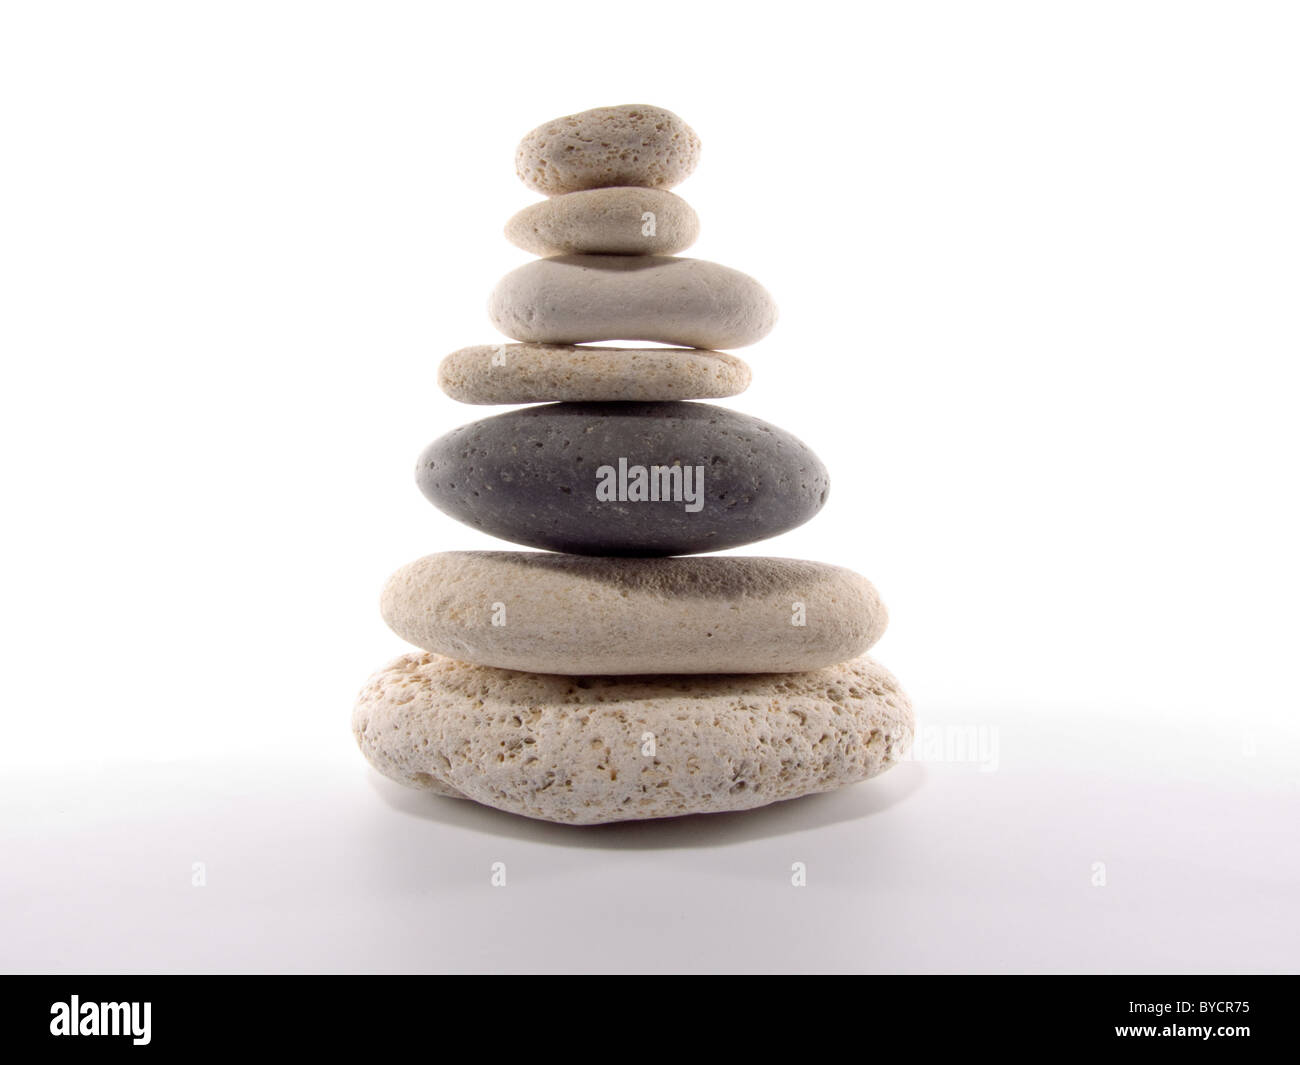 stones, balance, on, arrangement, concepts, stability, isolated, white, stack, zen-like, pebble, harmony, tranquil, - Stock Image